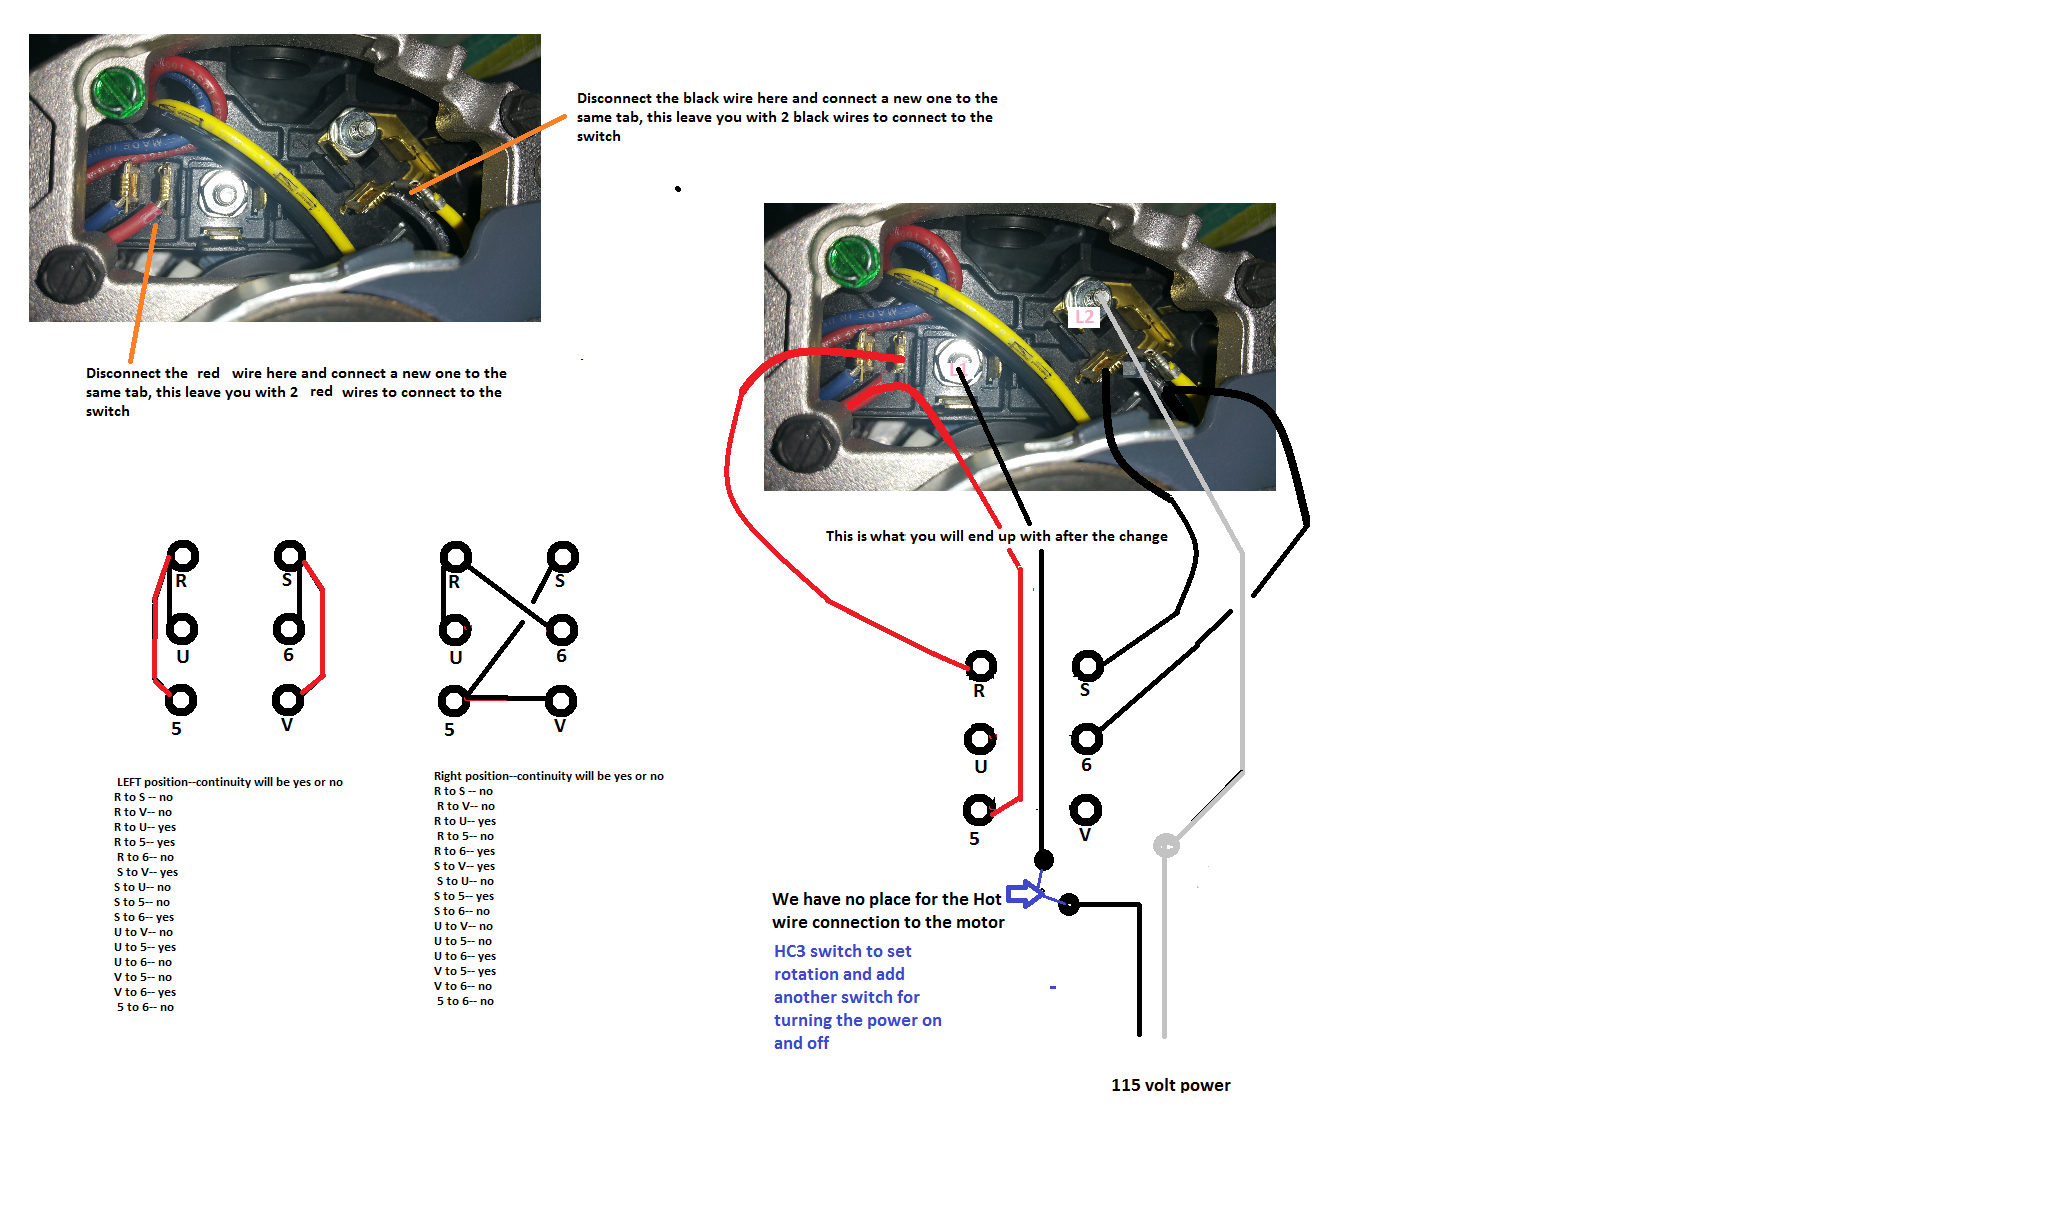 fdae78ae-9758-4039-92e0-05b626b8fa74_HC3 Drum switch and Stab Connection Motor.png